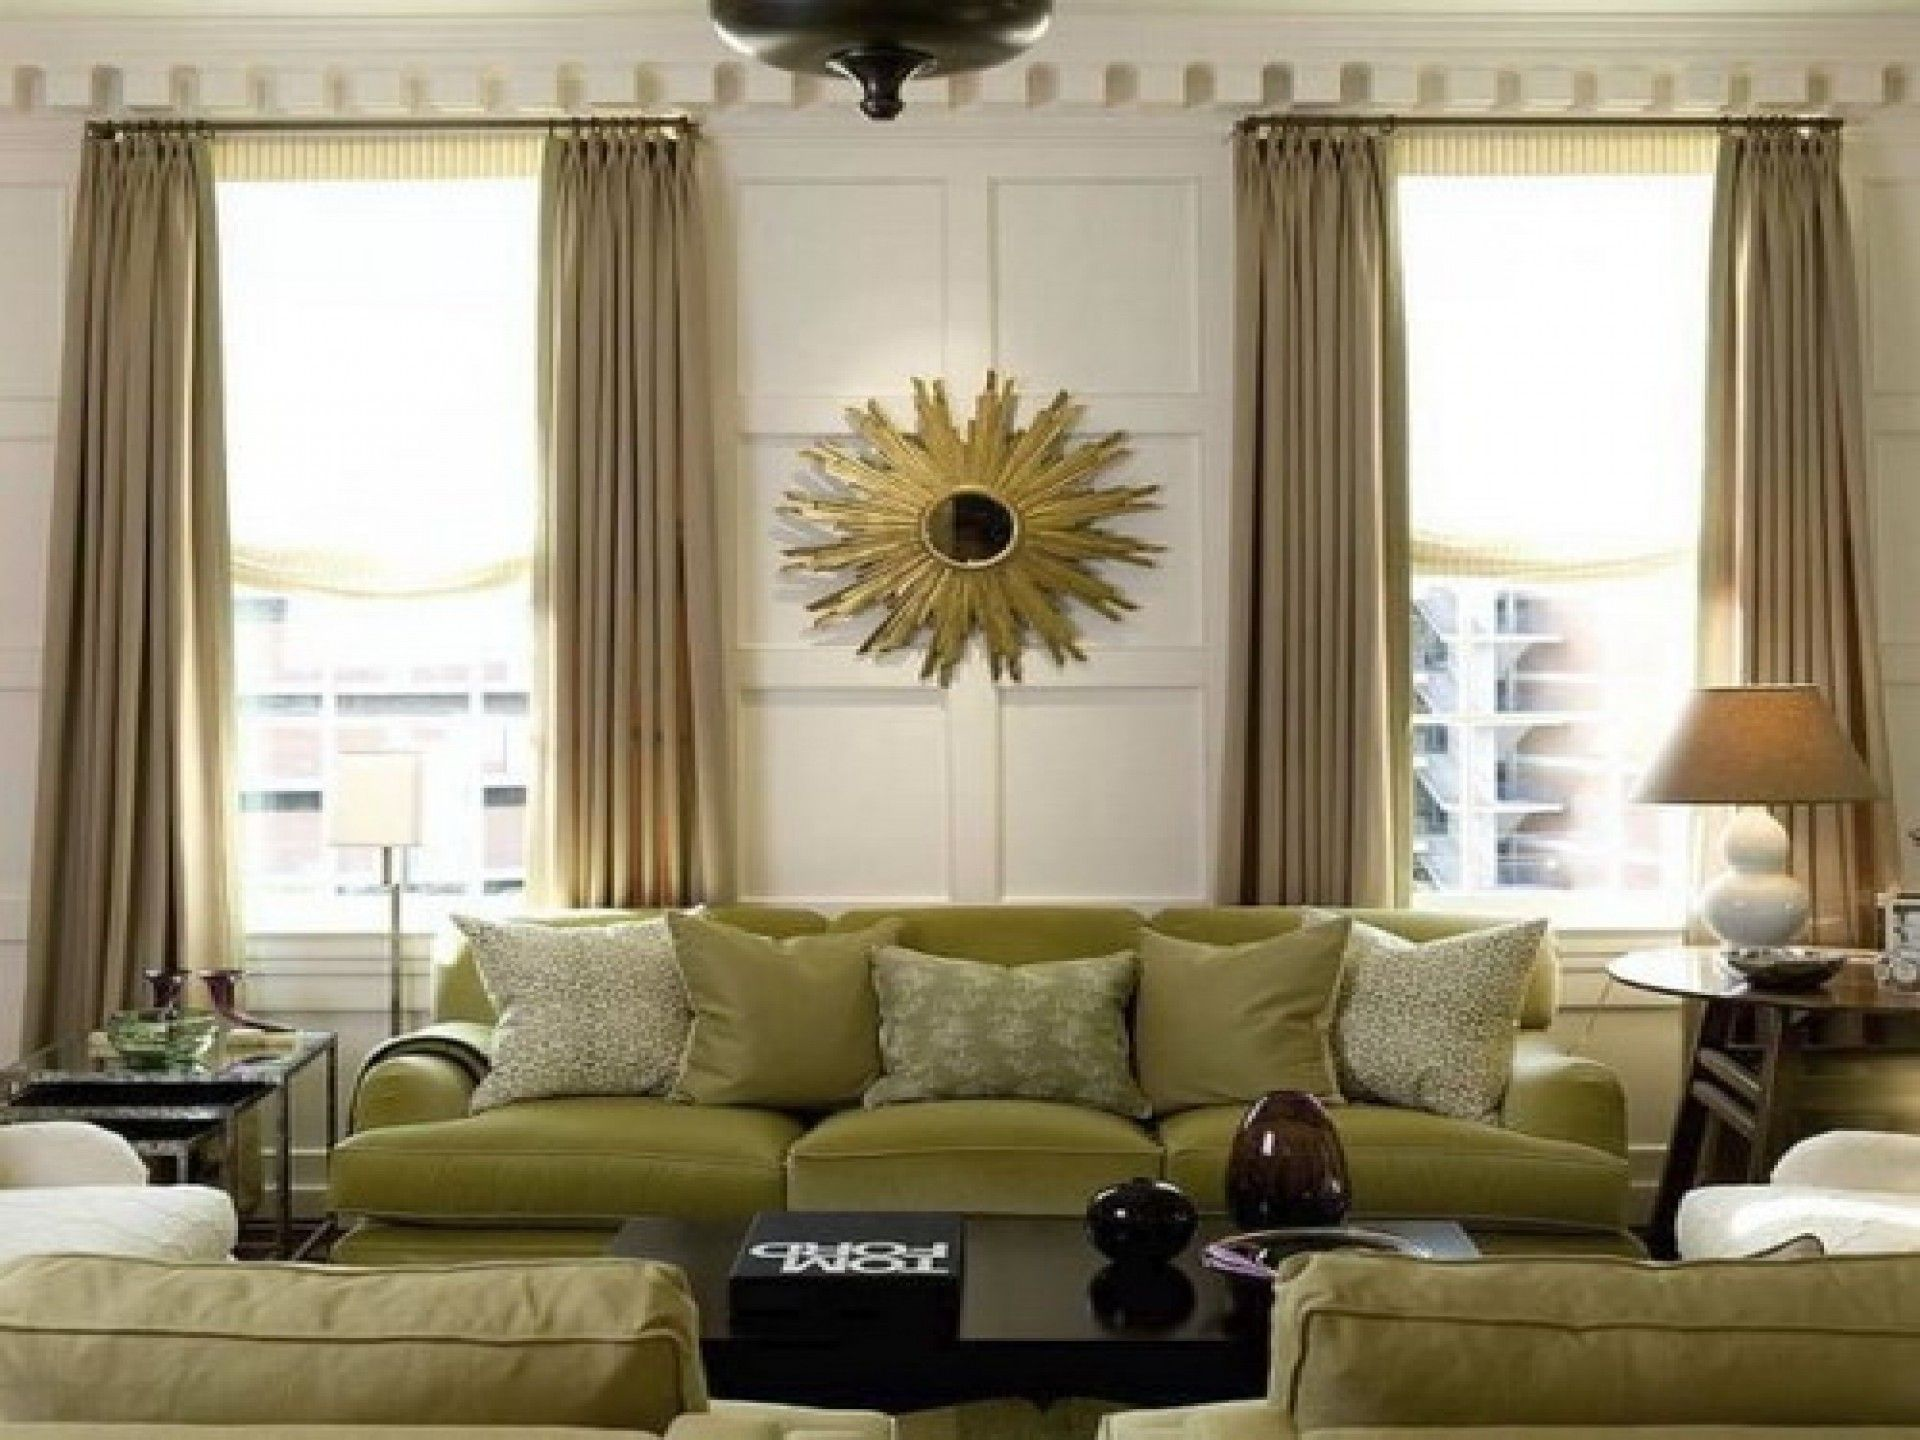 Comelydesignideasofcurtainstylesforlivingroomwithlight Captivating Modern Design Curtains For Living Room Inspiration